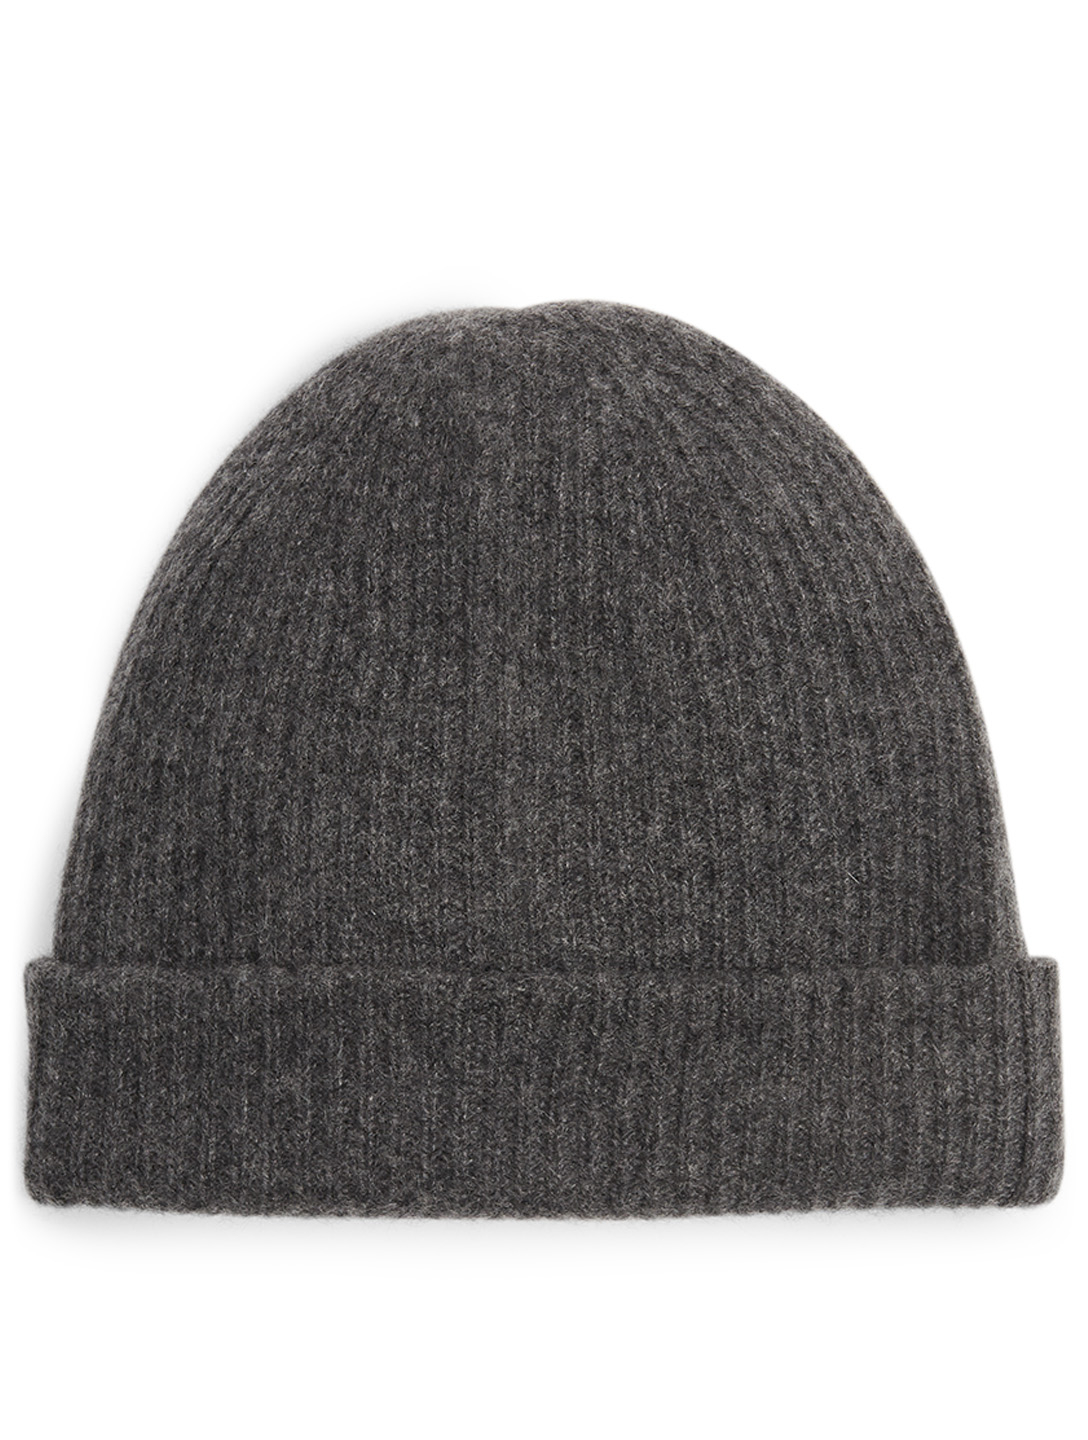 WHITE & WARREN Cashmere Toque Collections Grey